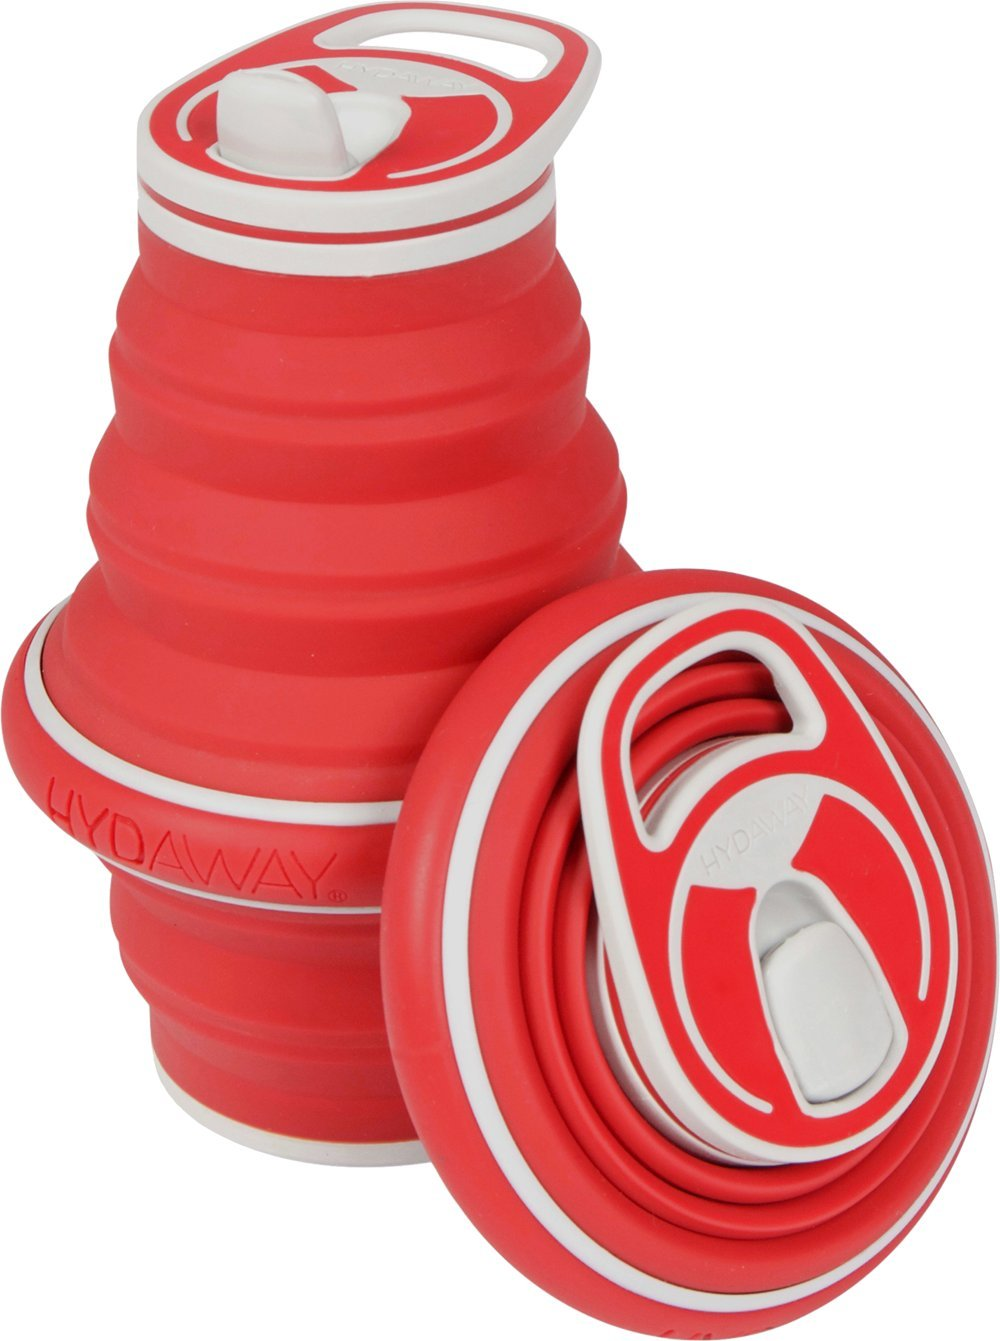 HYDAWAY New Collapsible Pocket-sized Travel Water Bottle - 21 oz.